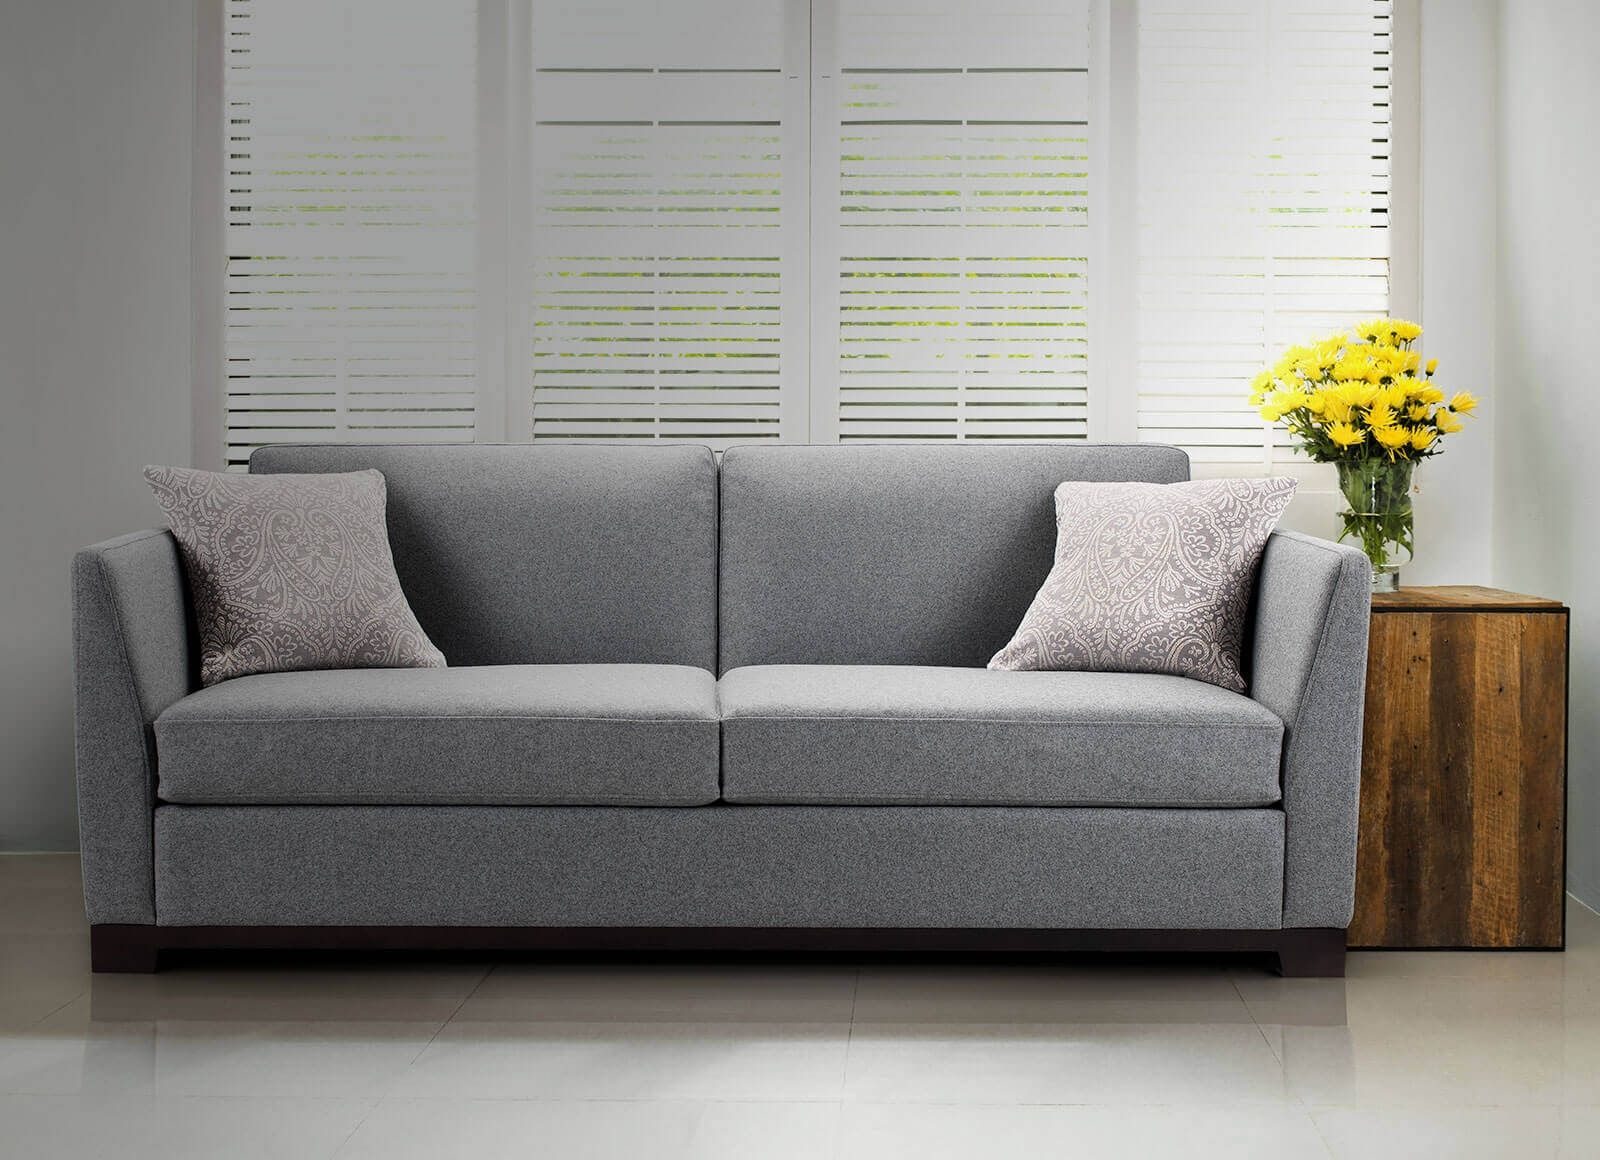 Comfortable Sofa Bed For Everyday Use